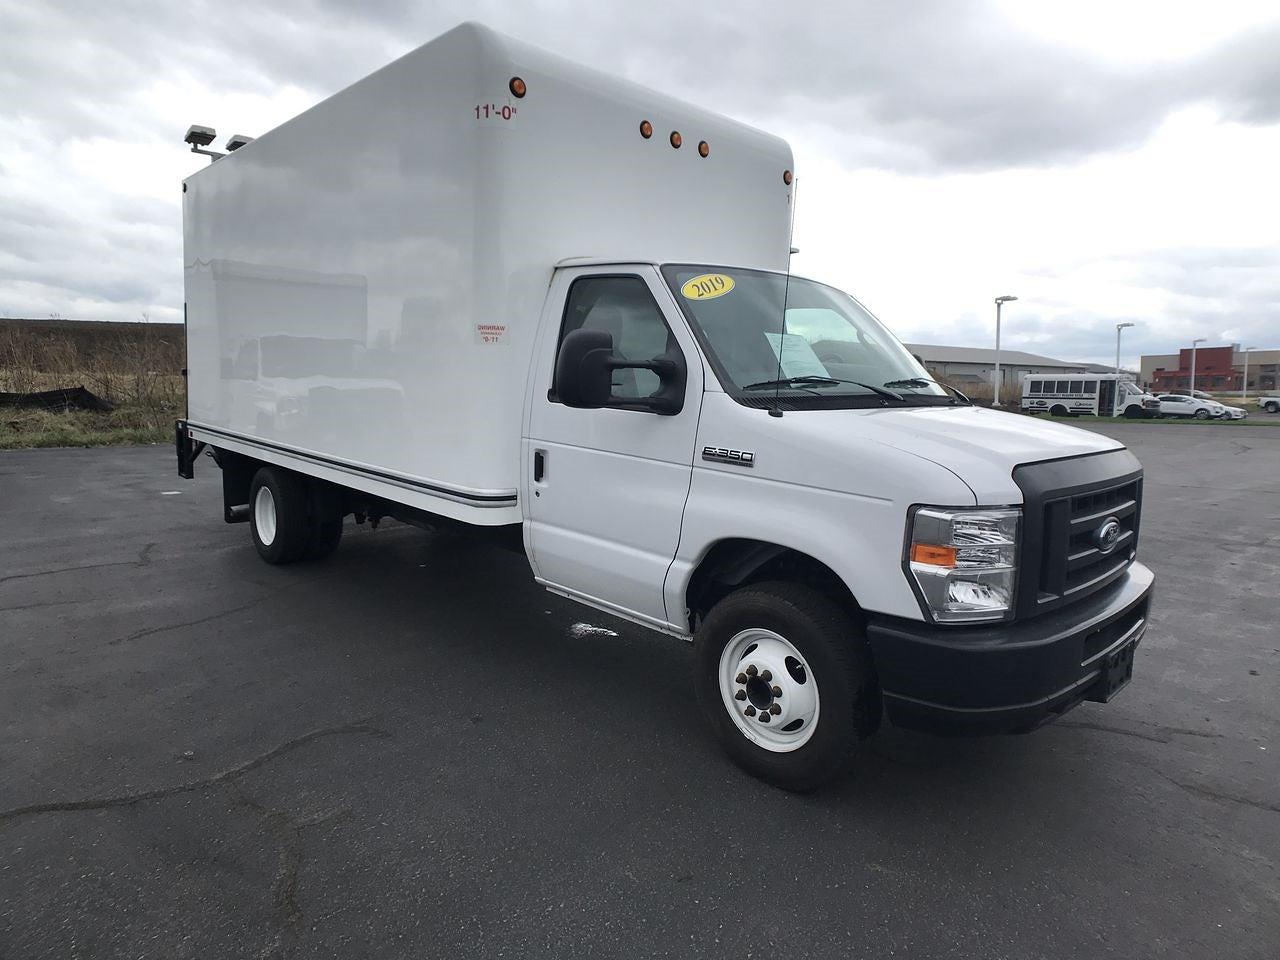 2019 Ford E-350 4x2, Dry Freight #111757 - photo 1